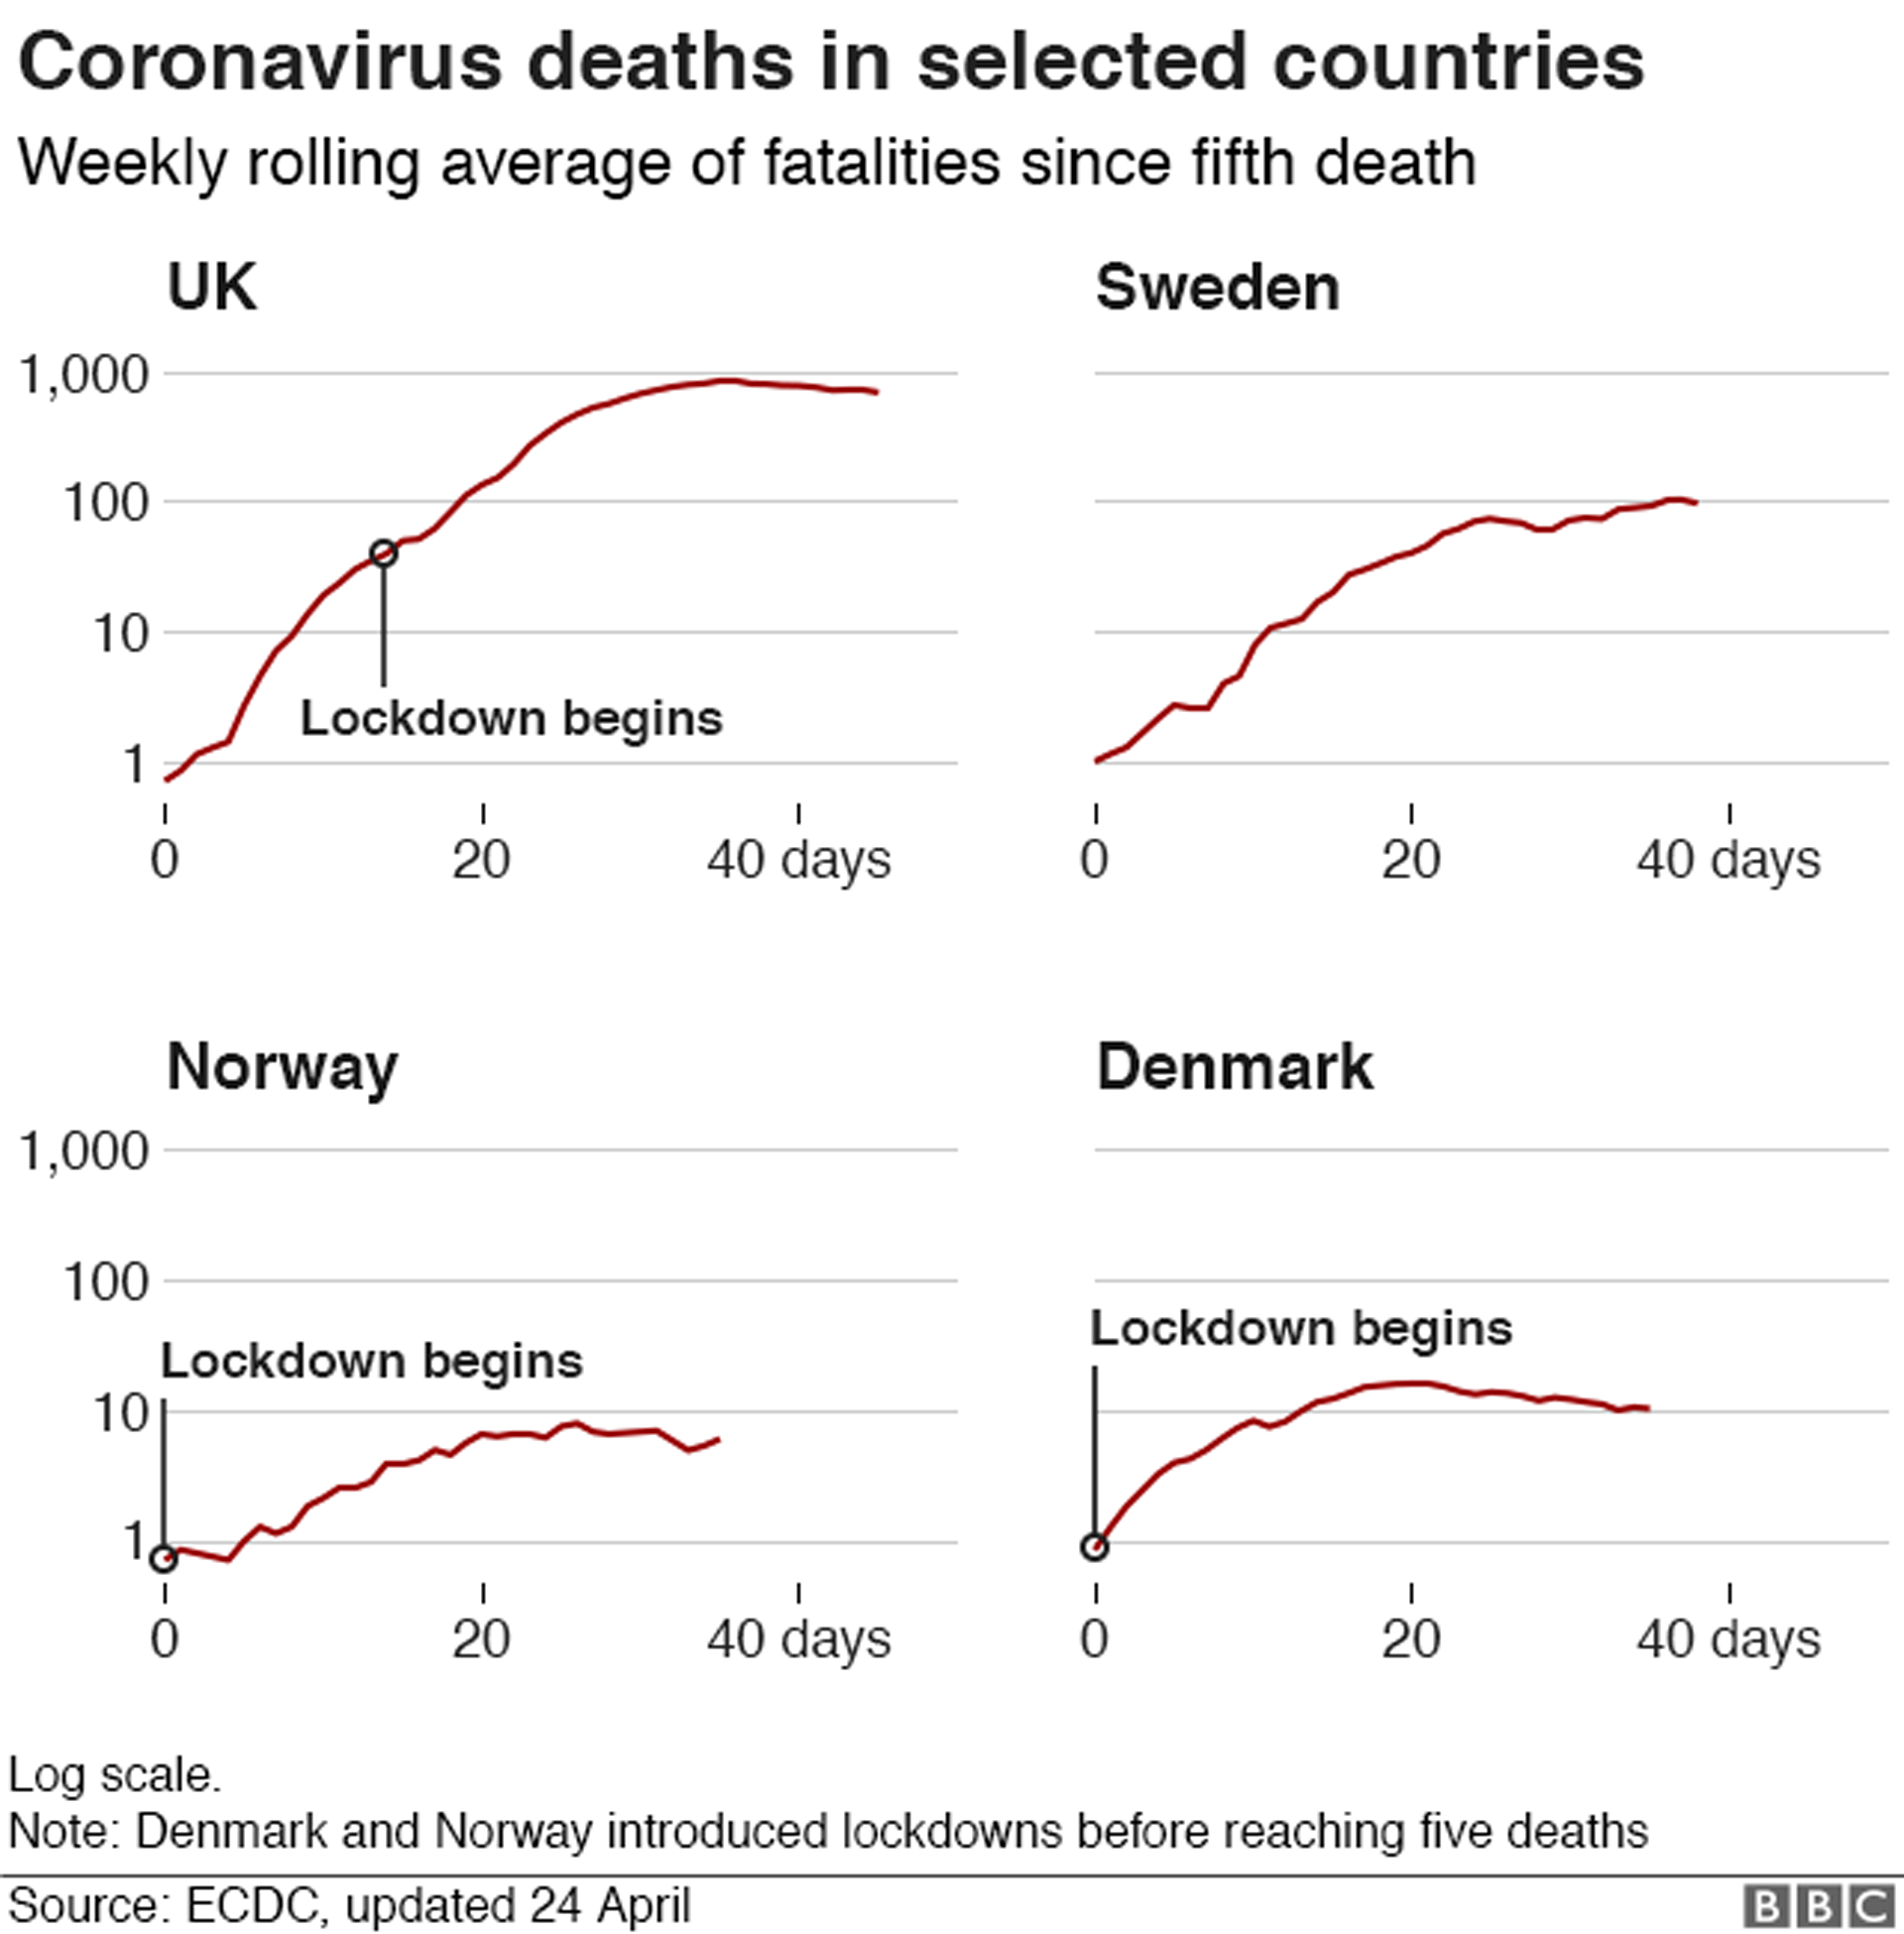 Table showing coronavirus deaths in four countries, UK, Sweden, Norway and Denmark